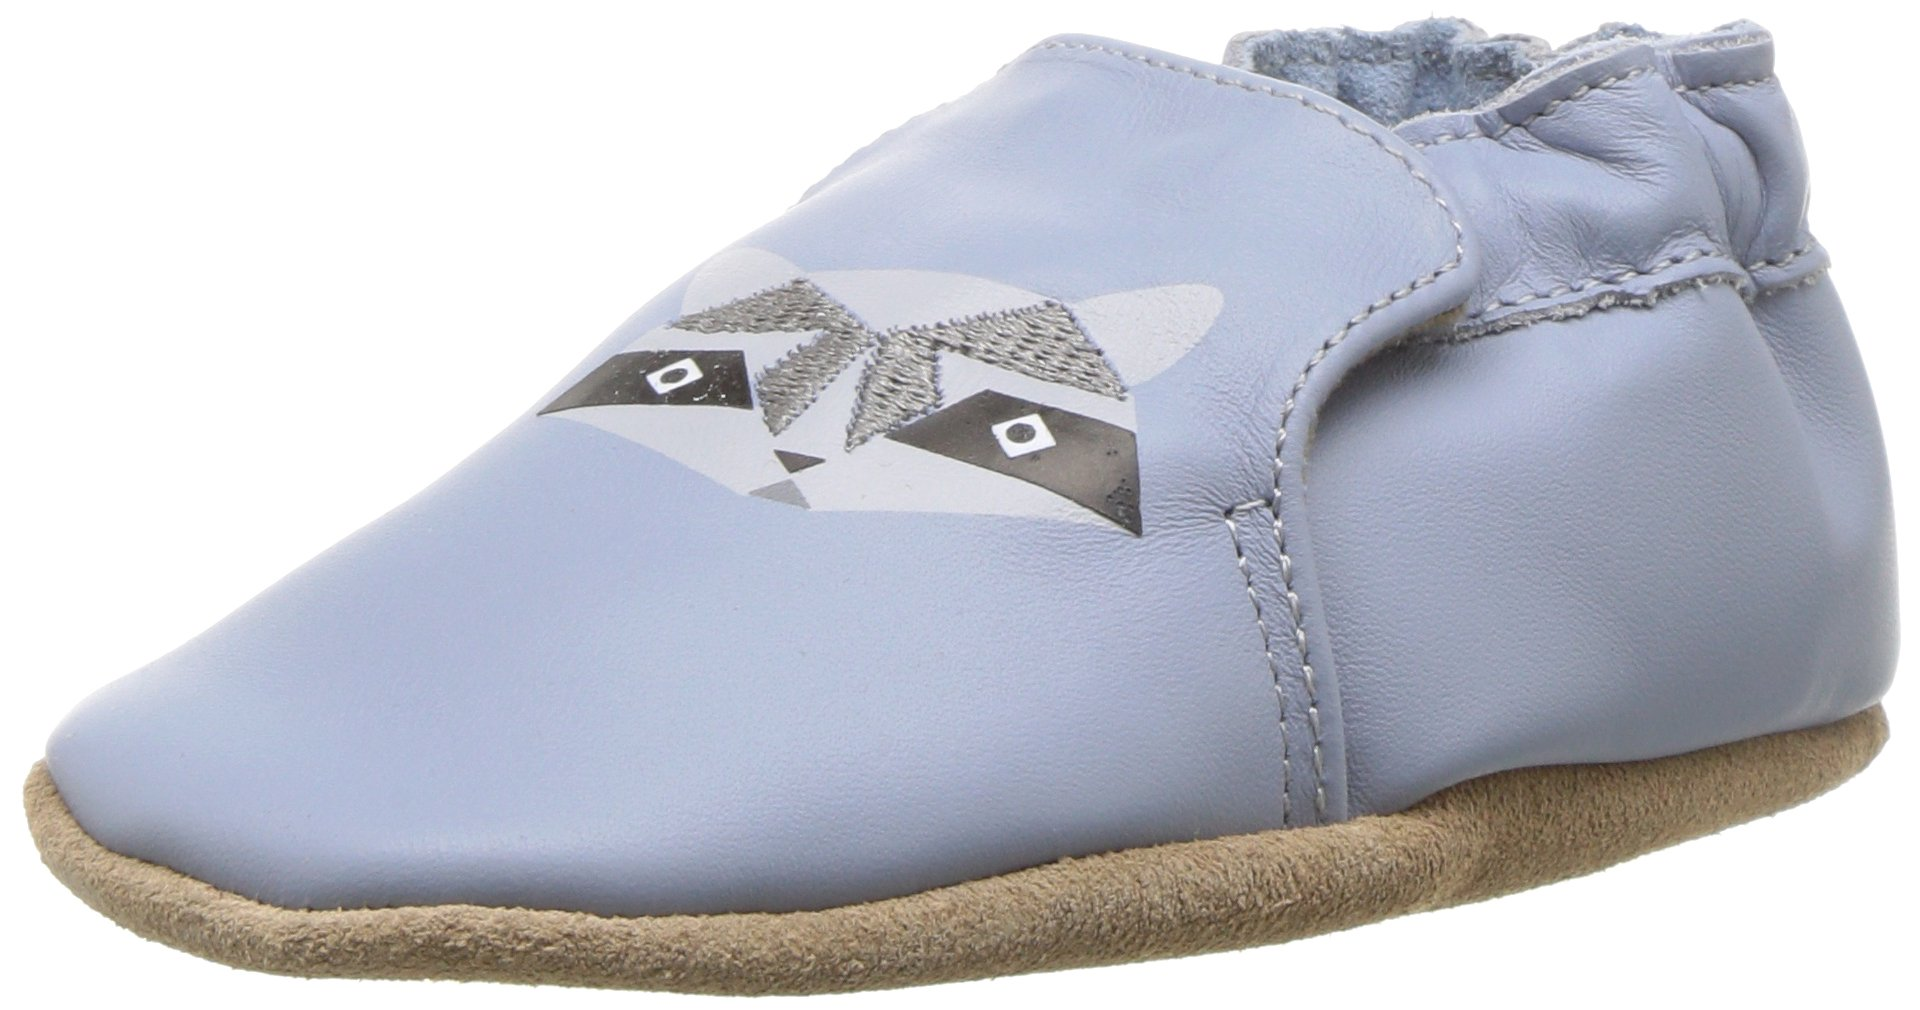 Robeez Boys' Soft Soles Crib Shoe, Raccoon Buddies Blue, 6-12 Months M US Infant by Robeez